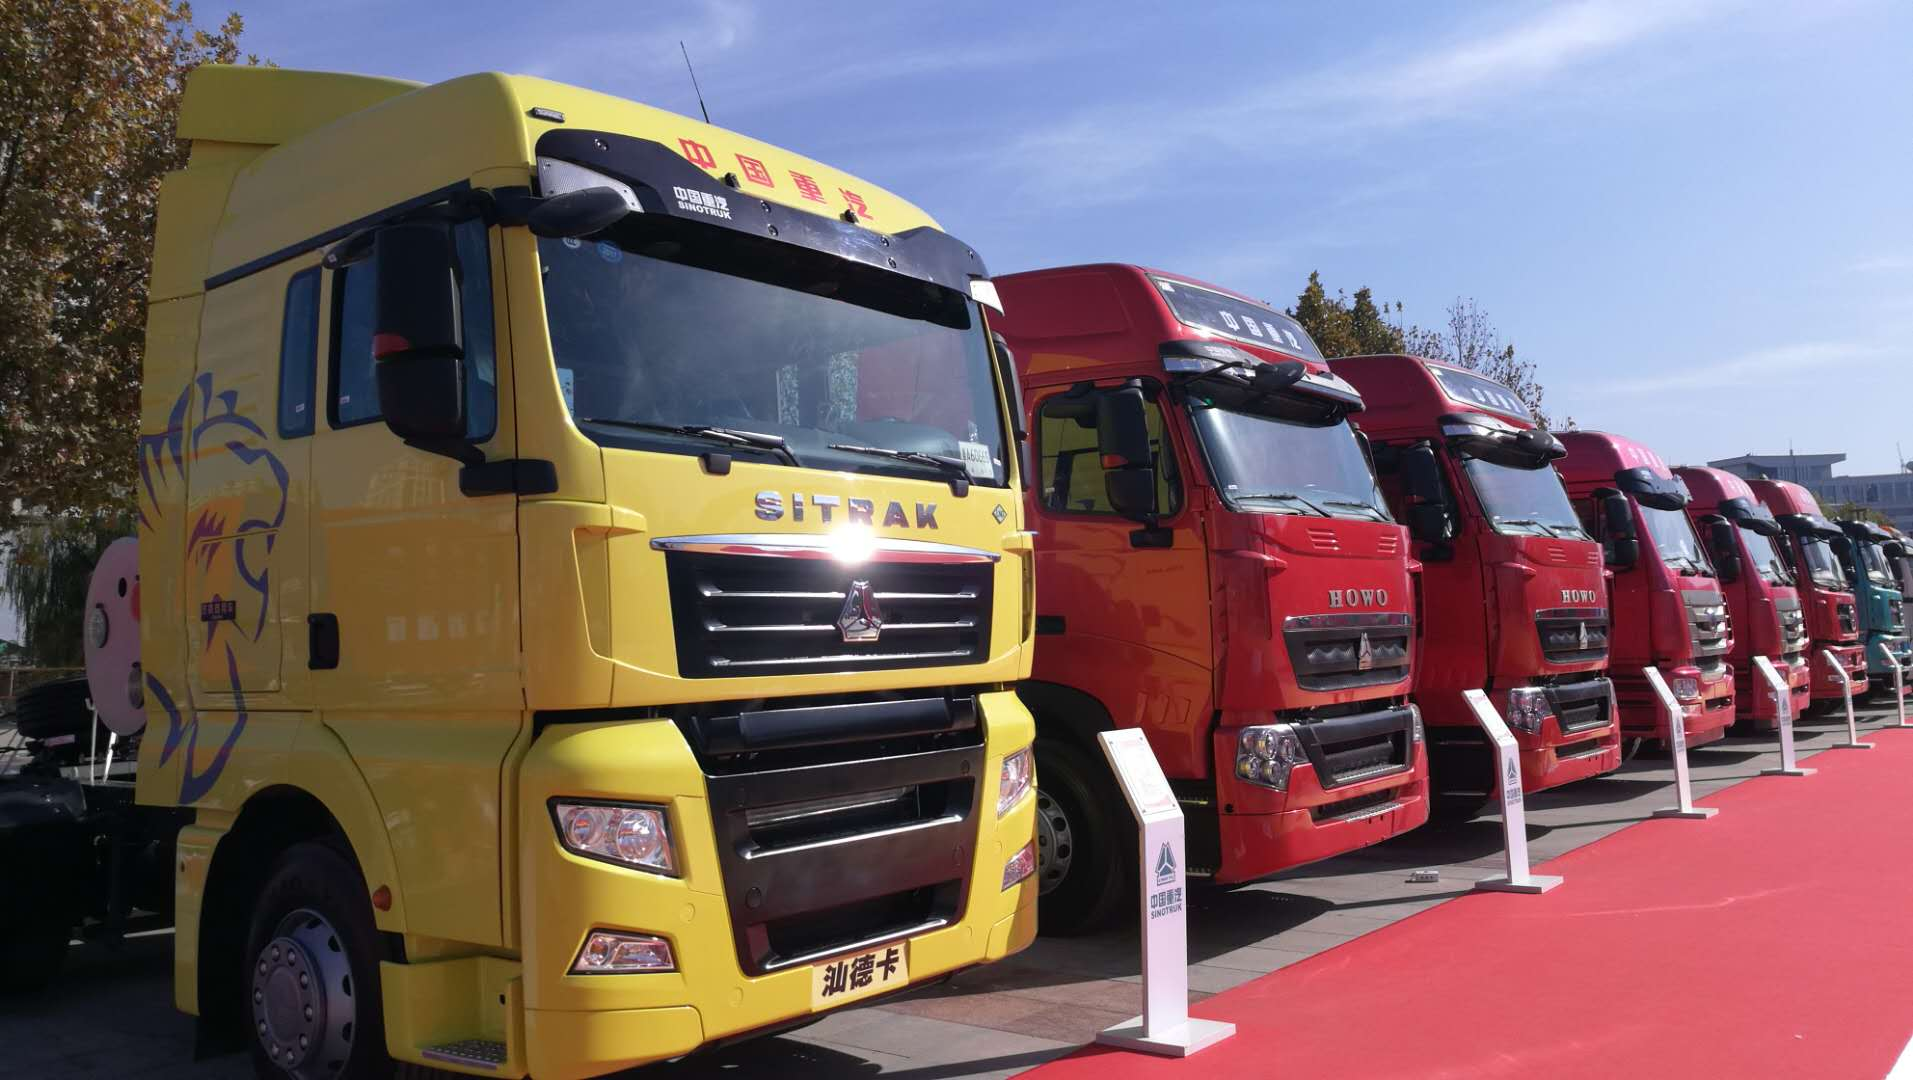 Attend the 10th China (jinan) international truck exhibition in 2017